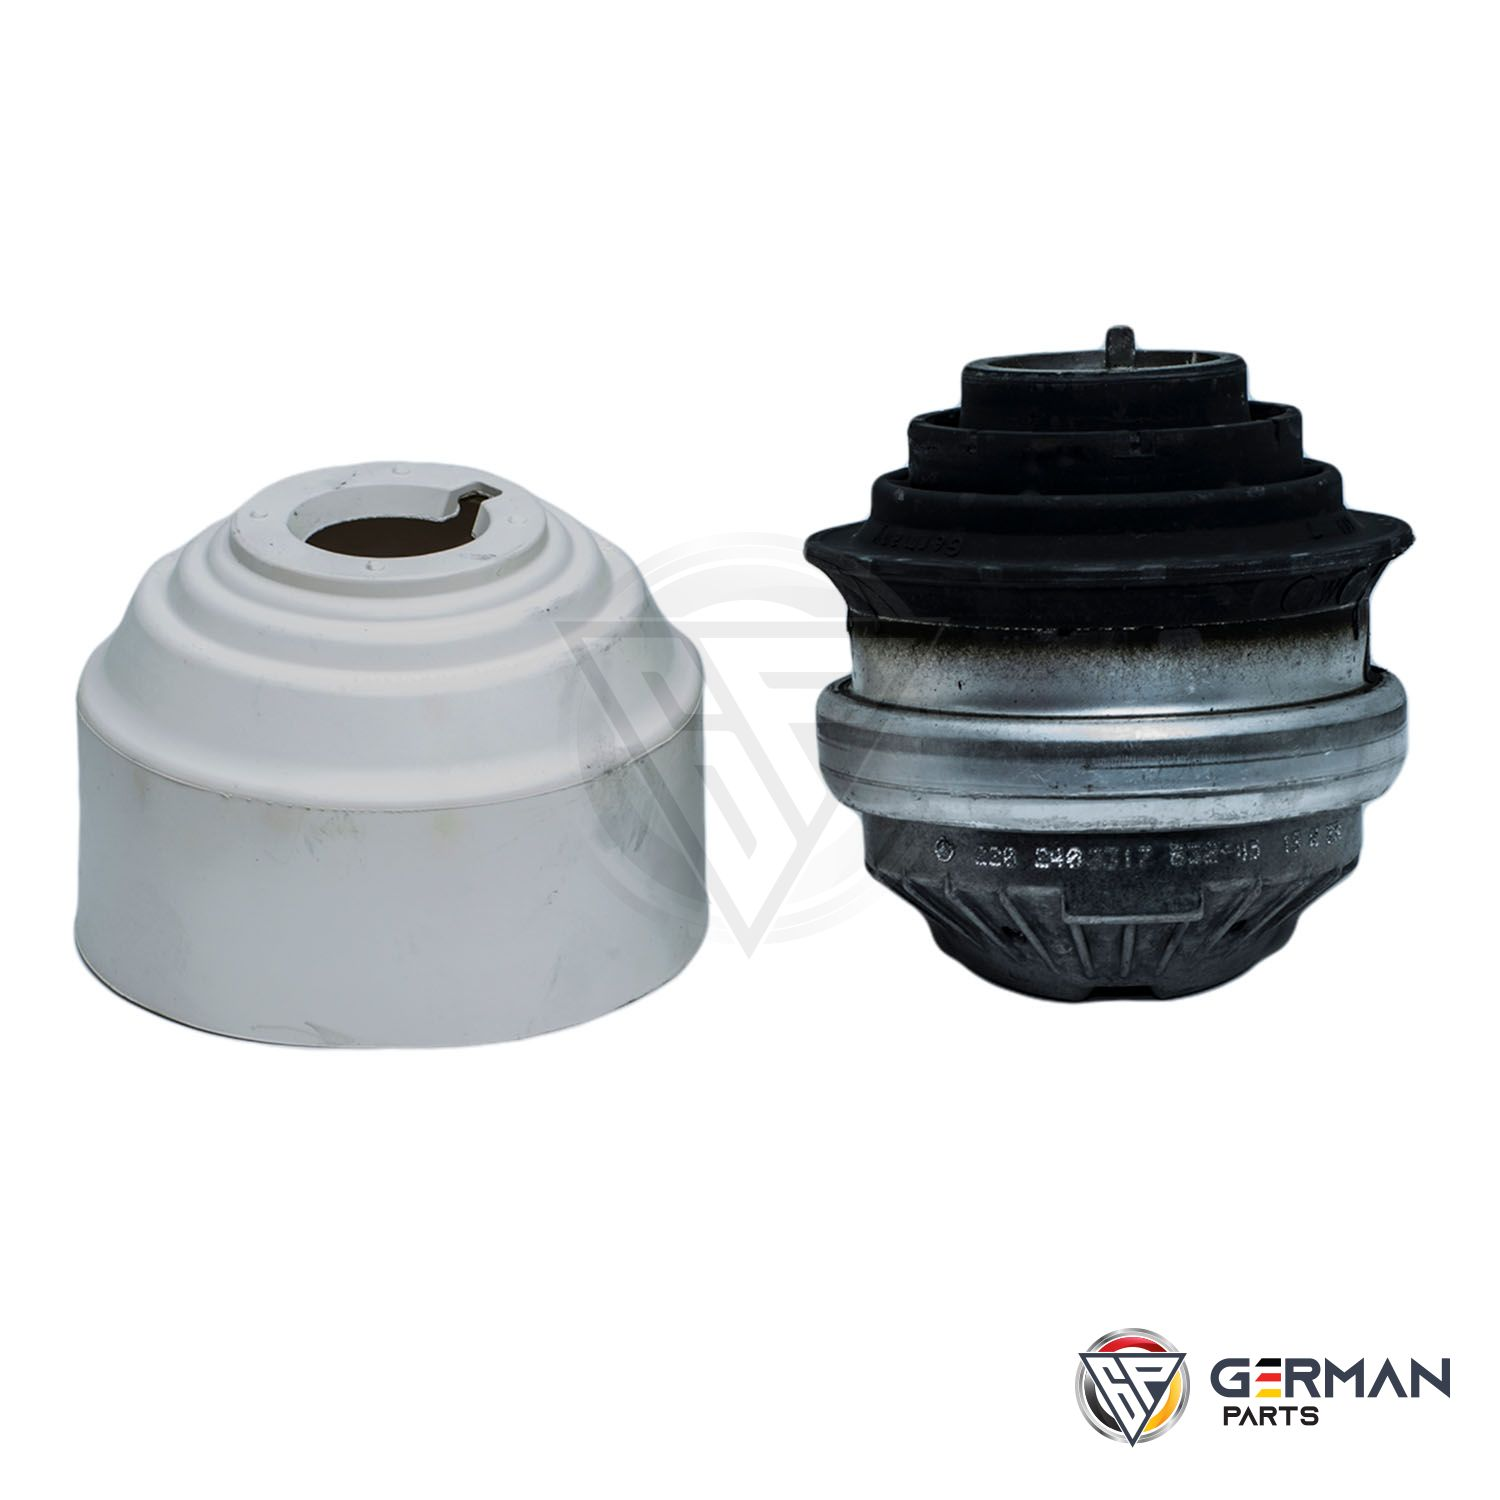 Buy Mercedes Benz Engine Mounting 2202403317 - German Parts